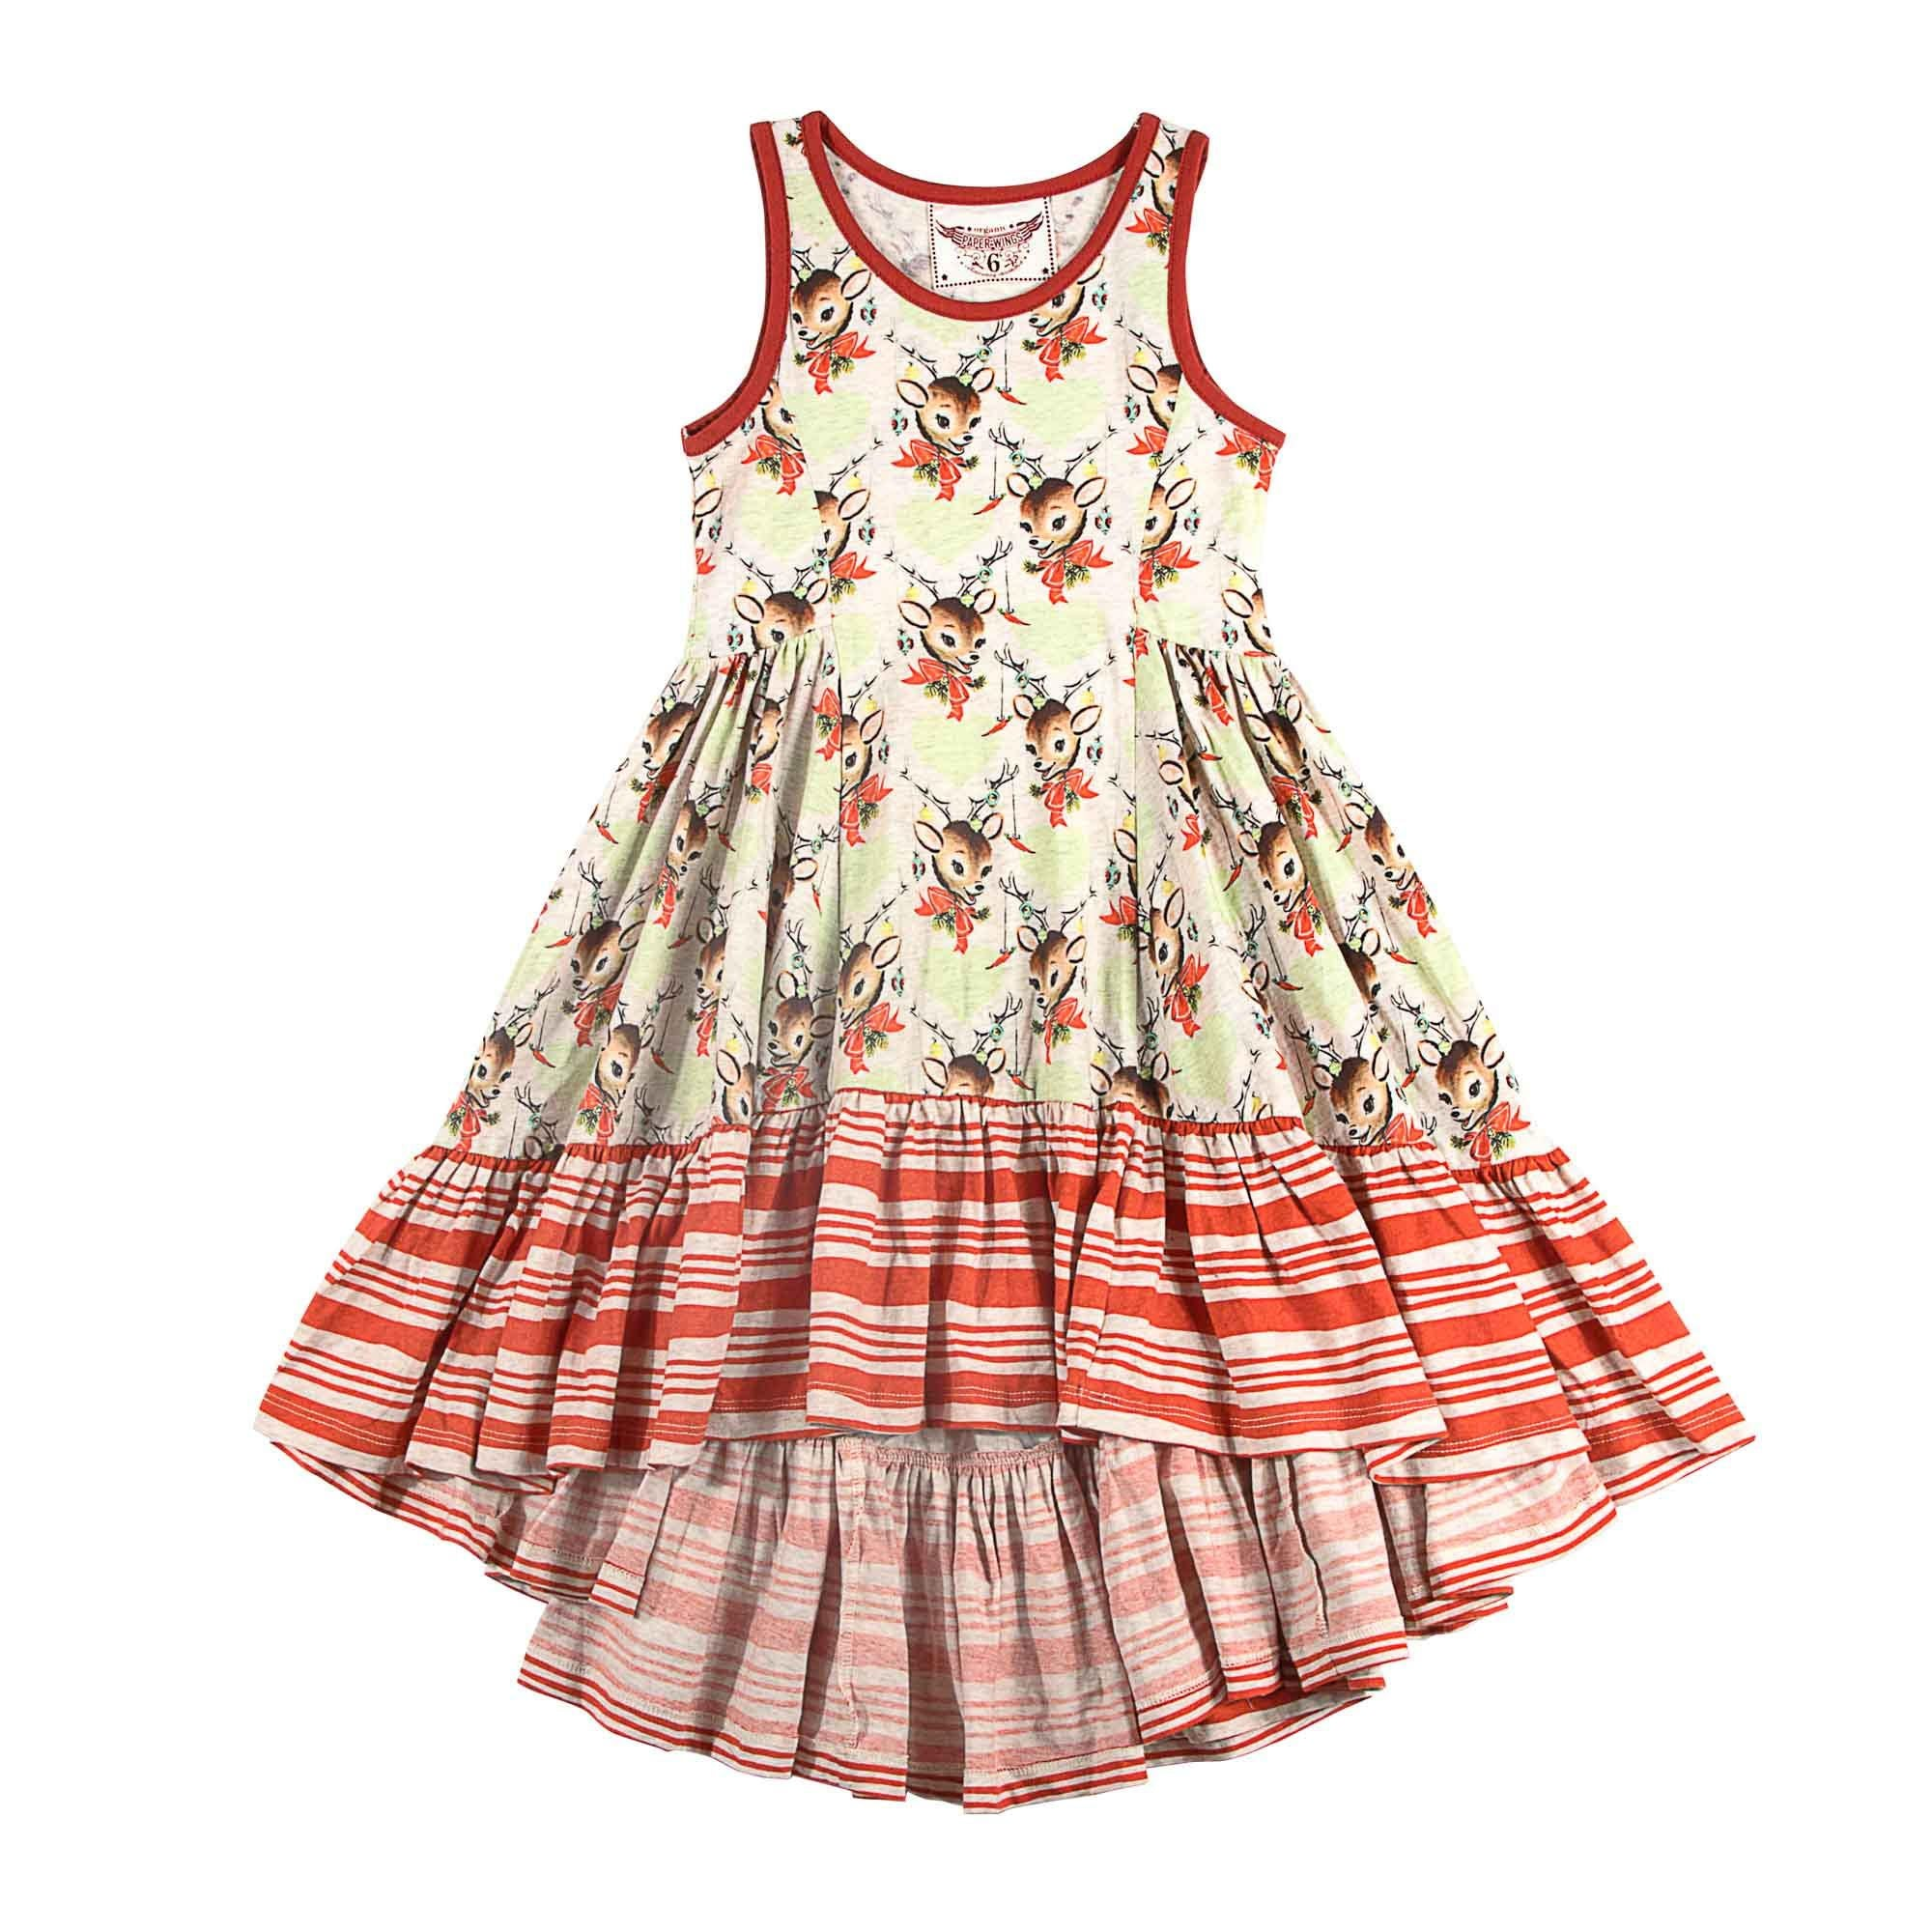 Paper Wings Bustle Swing Dress - Deco Deer